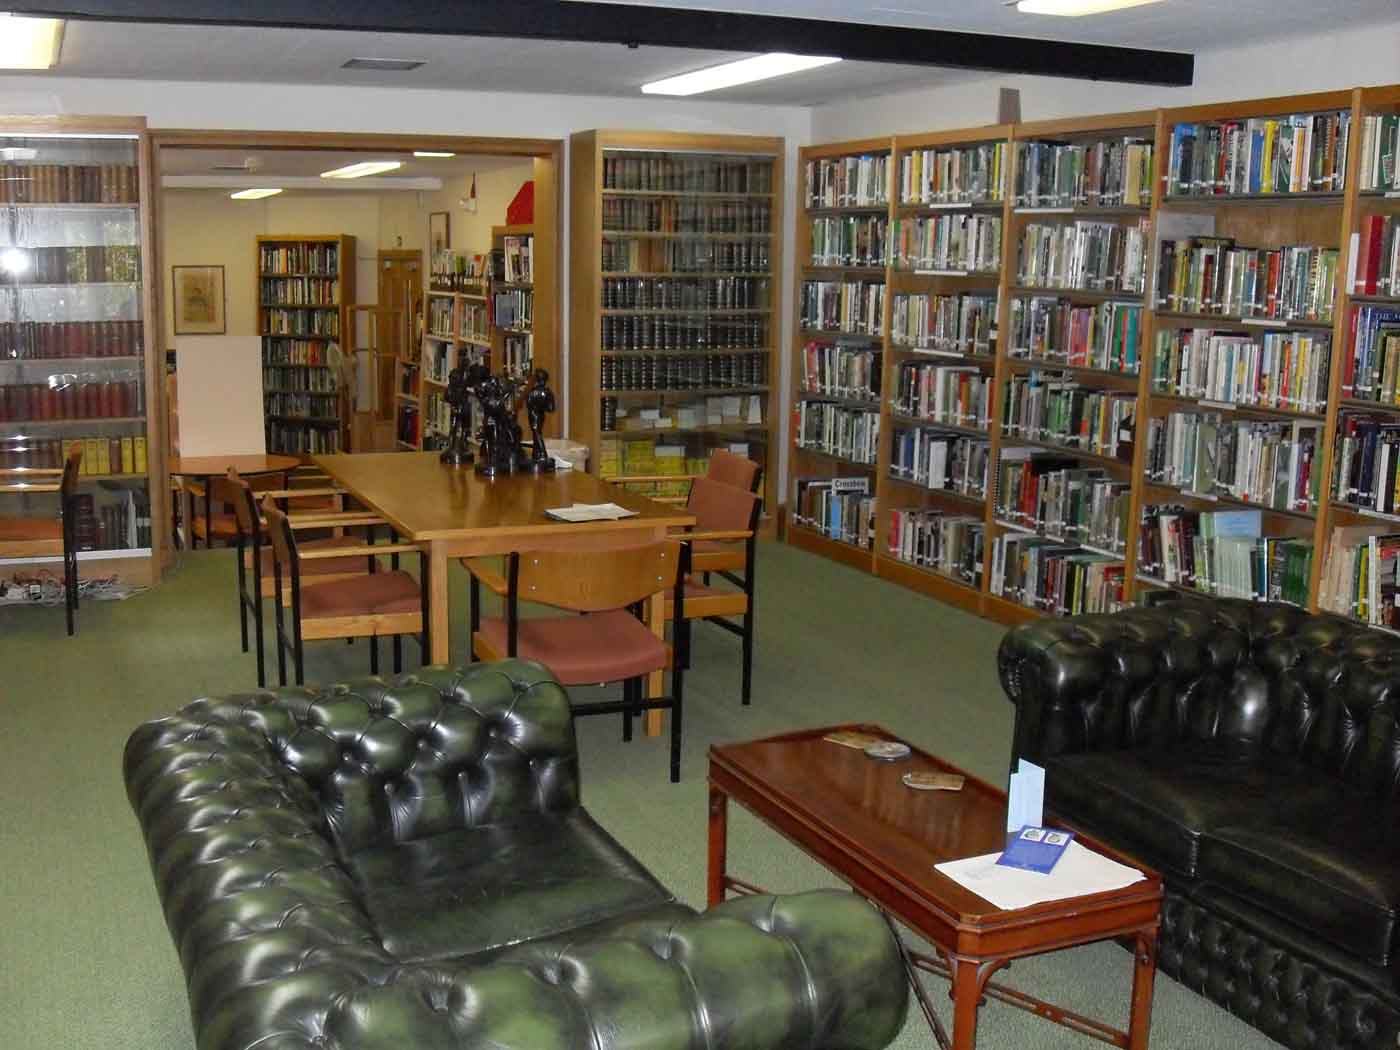 While cricket libraries, like the MCC library at Lord's, should be preserved, they must also find ways to stay relevant to generations brought up in the digital age